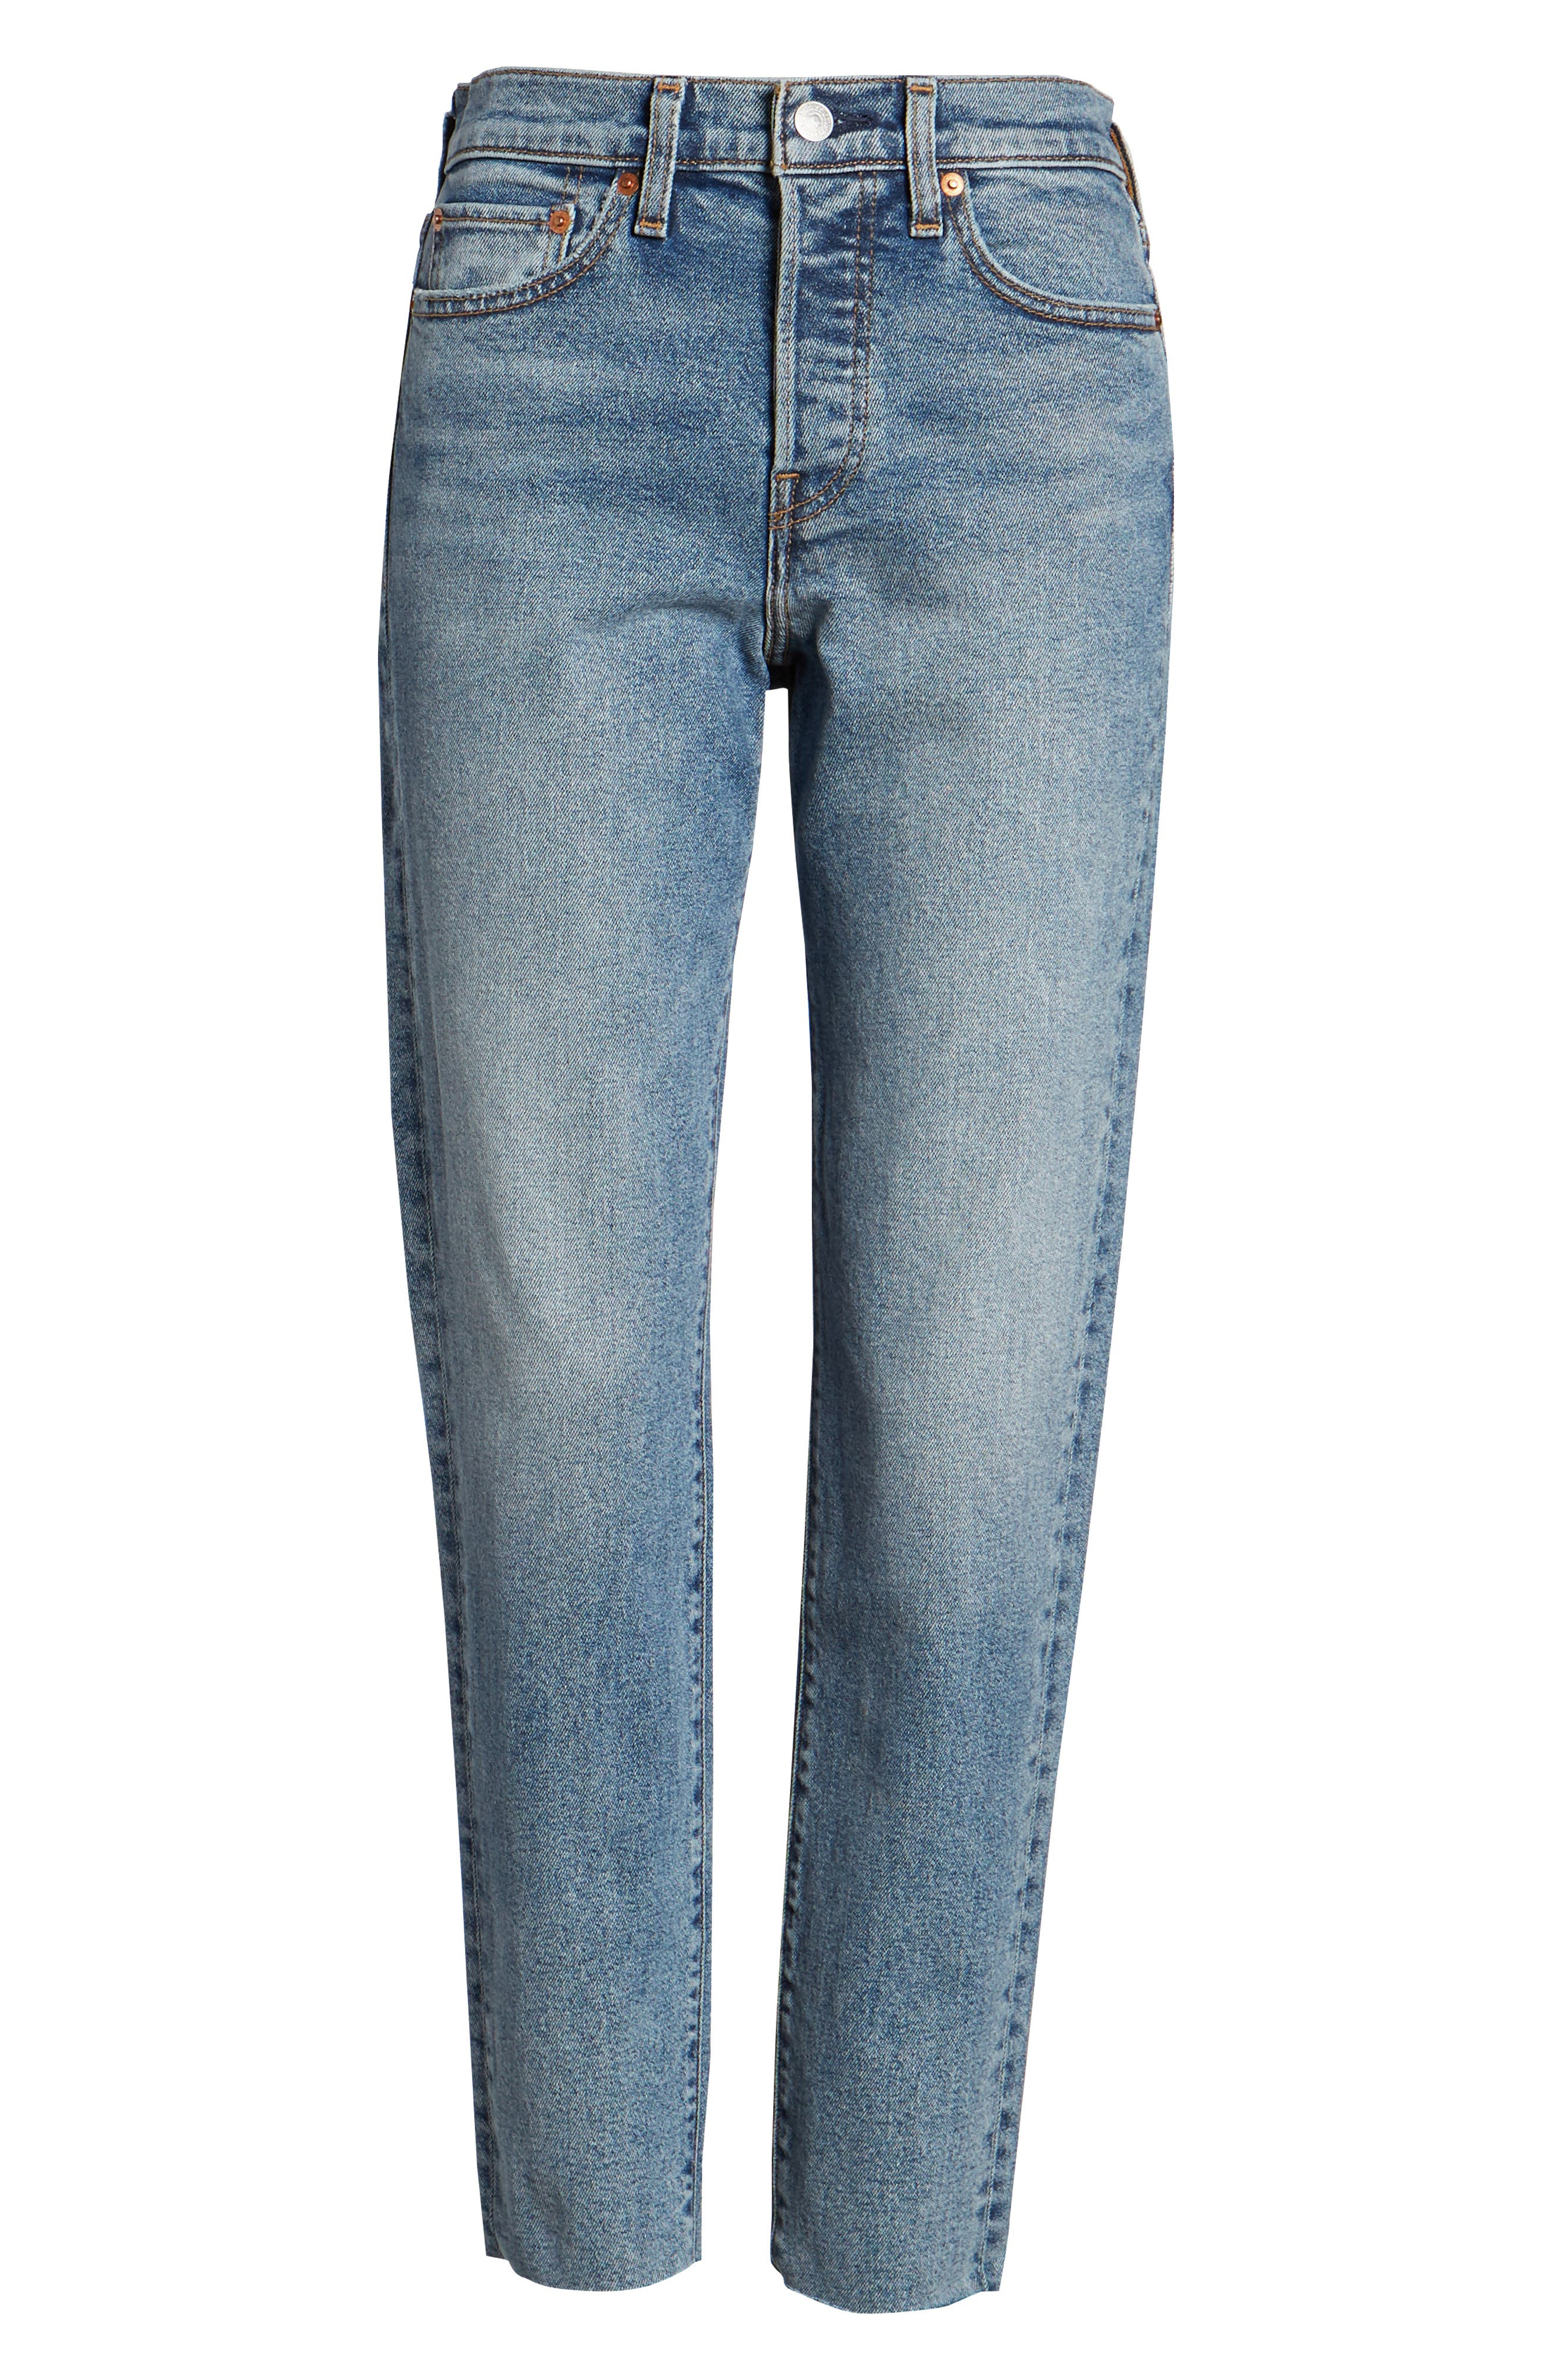 Wedgie Icon Fit High Waist Crop Jeans,                             Alternate thumbnail 6, color,                             401